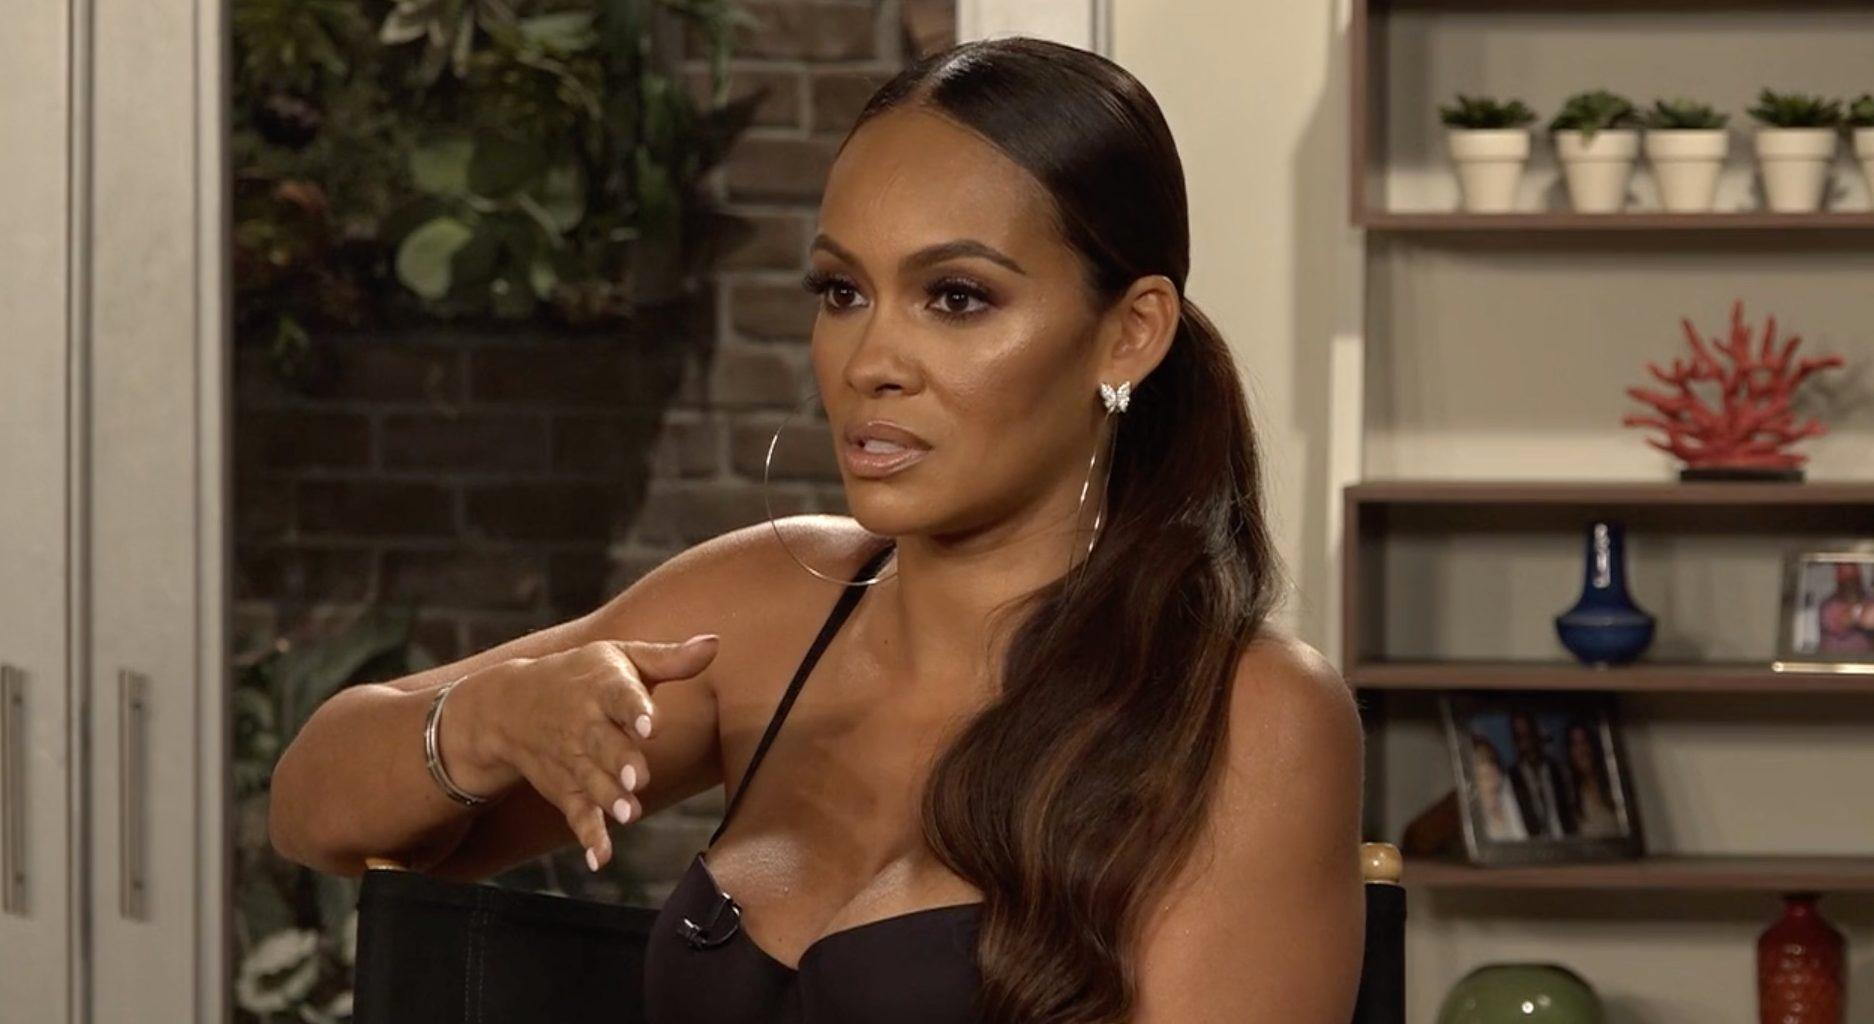 Evelyn Lozada Says She Won't Be Back On Basketball Wives!